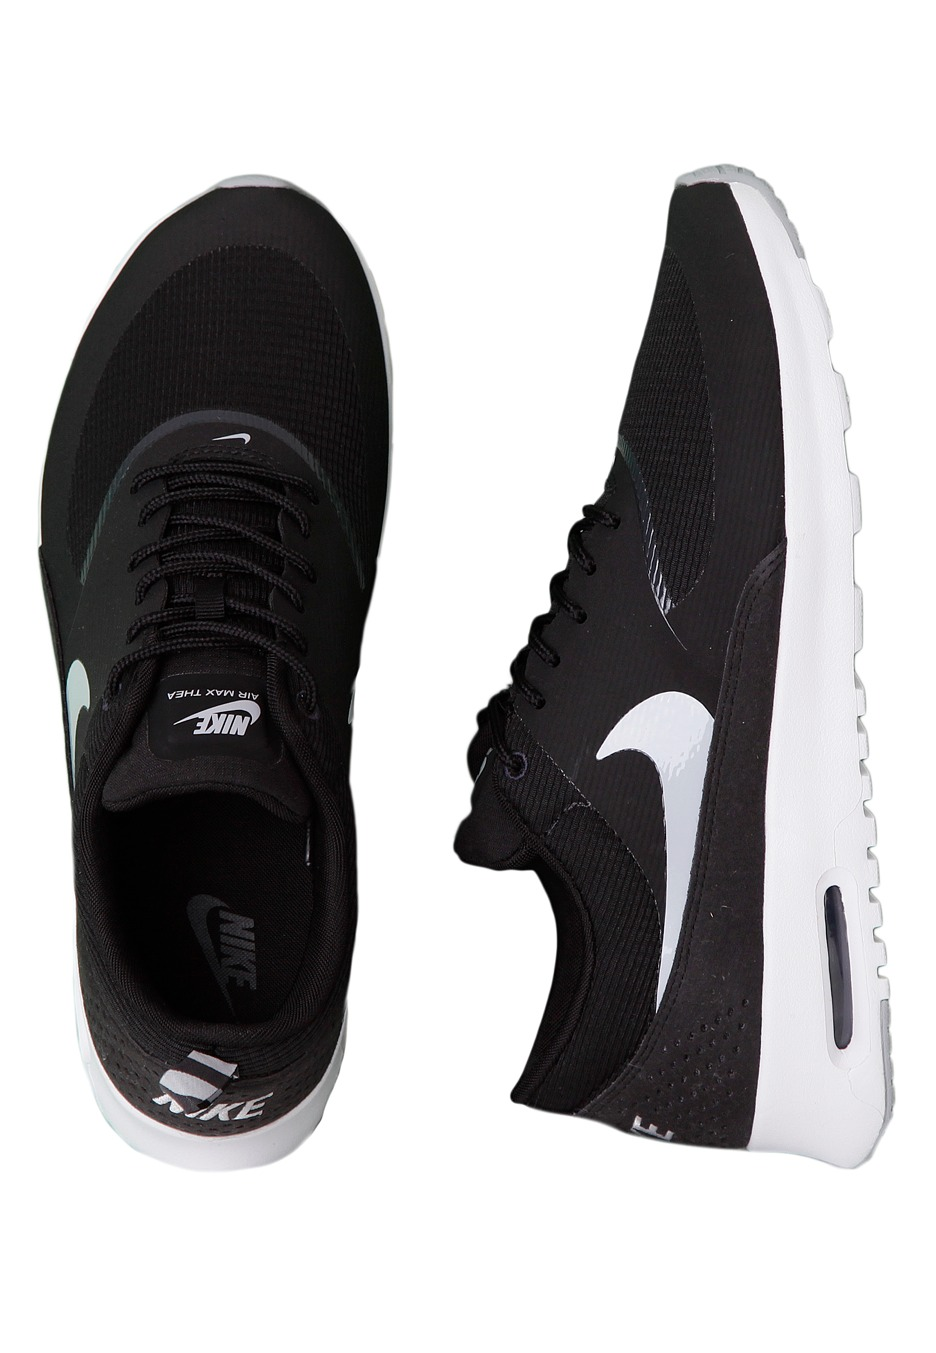 Air White Shoes Blackwolf Thea Nike Max Greyanthracite Girl xCthrBsQdo